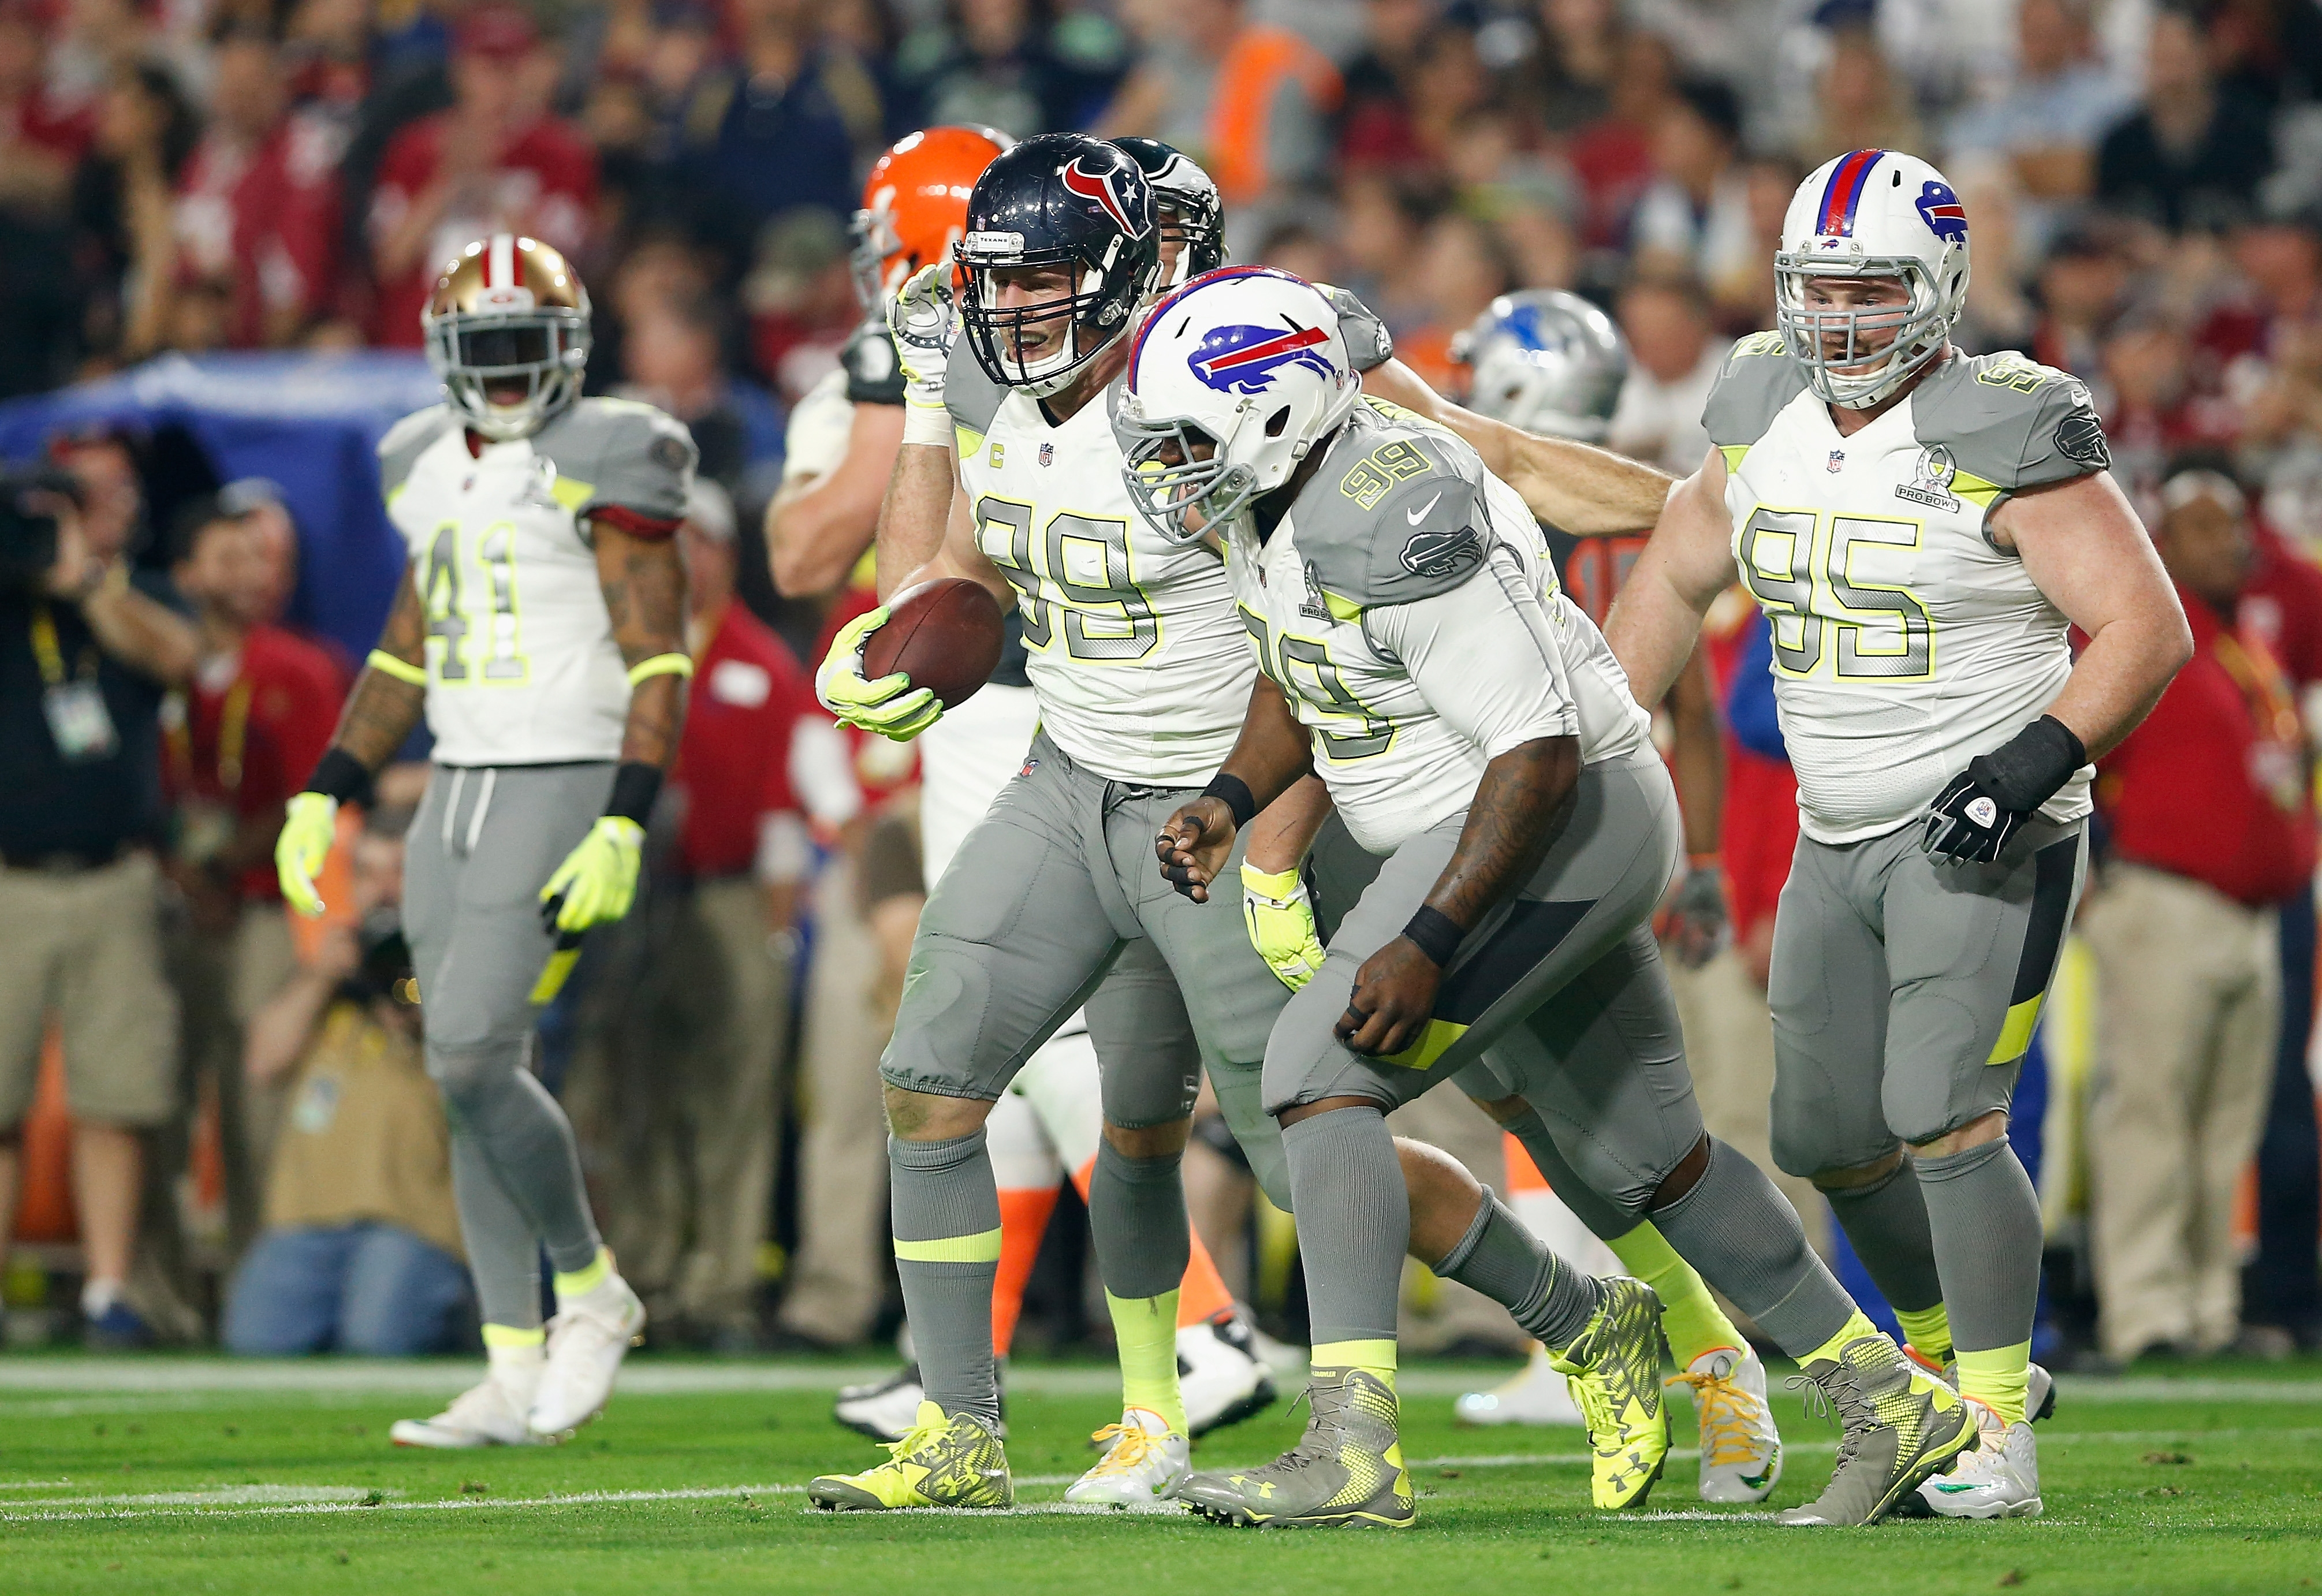 Team Carter defensive end J.J. Watt #99 of the Houston Texans (left), defensive tackle Marcell Dareus (99) and Kyle Williams of the Buffalo Bills (right) celebrate during the first half of the 2015 Pro Bowl.